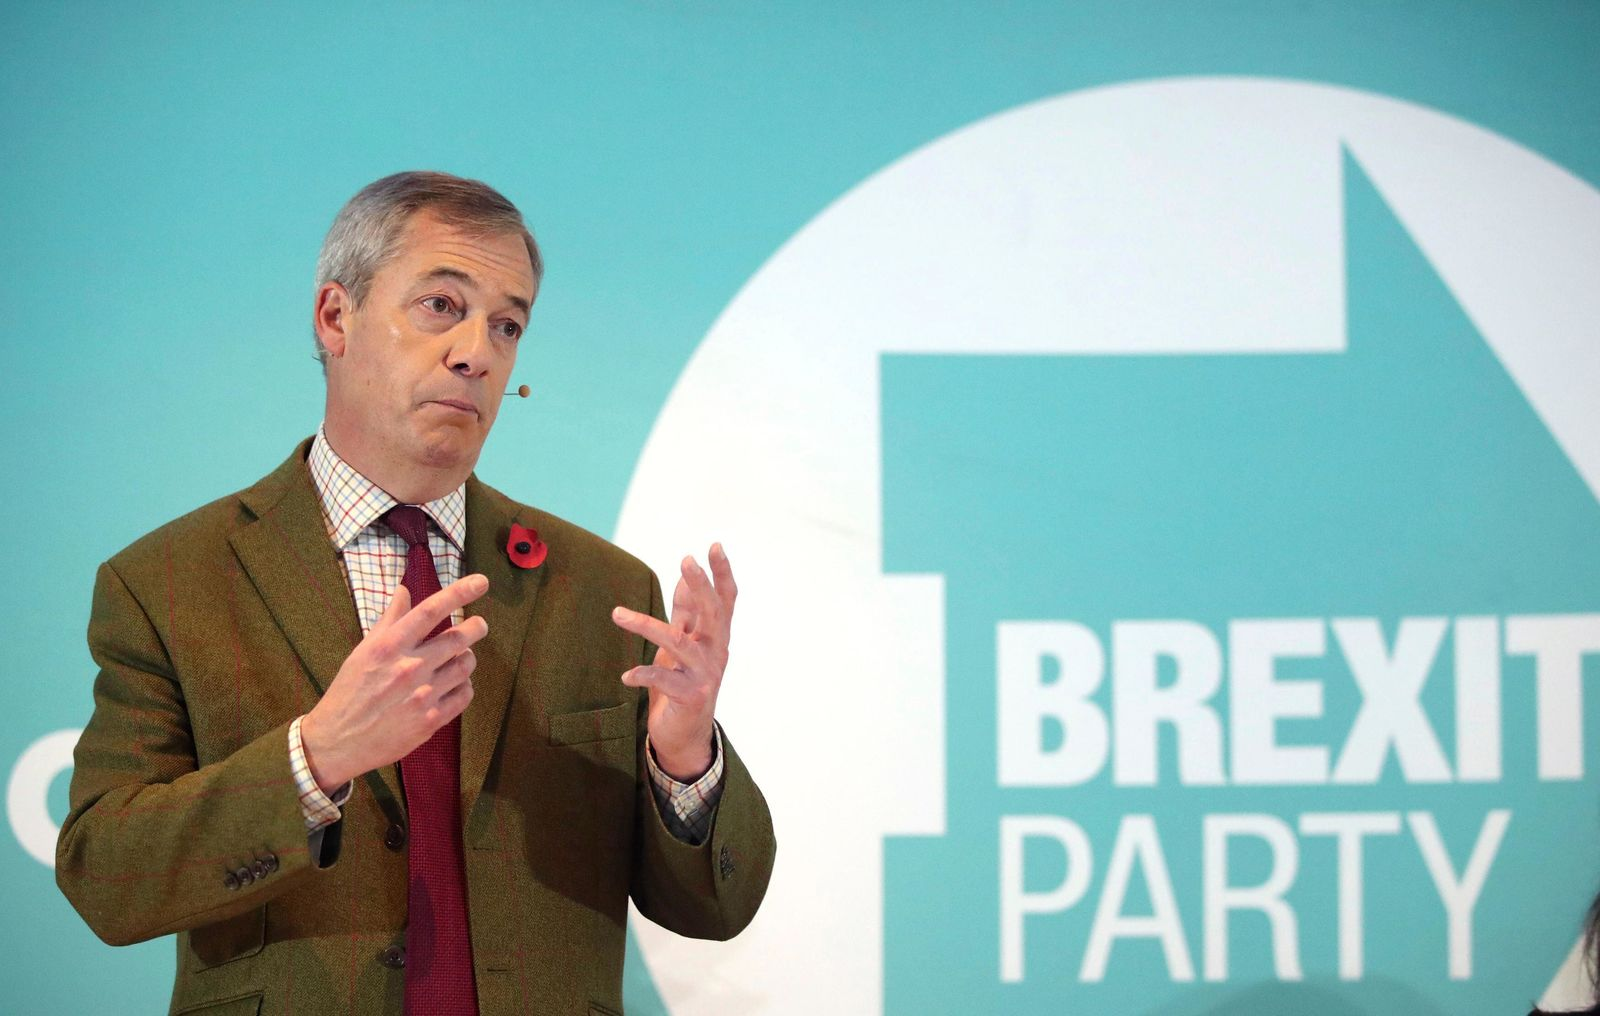 Brexit Party leader Nigel Farage gestures as he delivers a speech to supporters, during an event at the Washington Central Hotel, in Workington, England, Wednesday, Nov. 6, 2019.{ } (Danny Lawson/PA via AP)